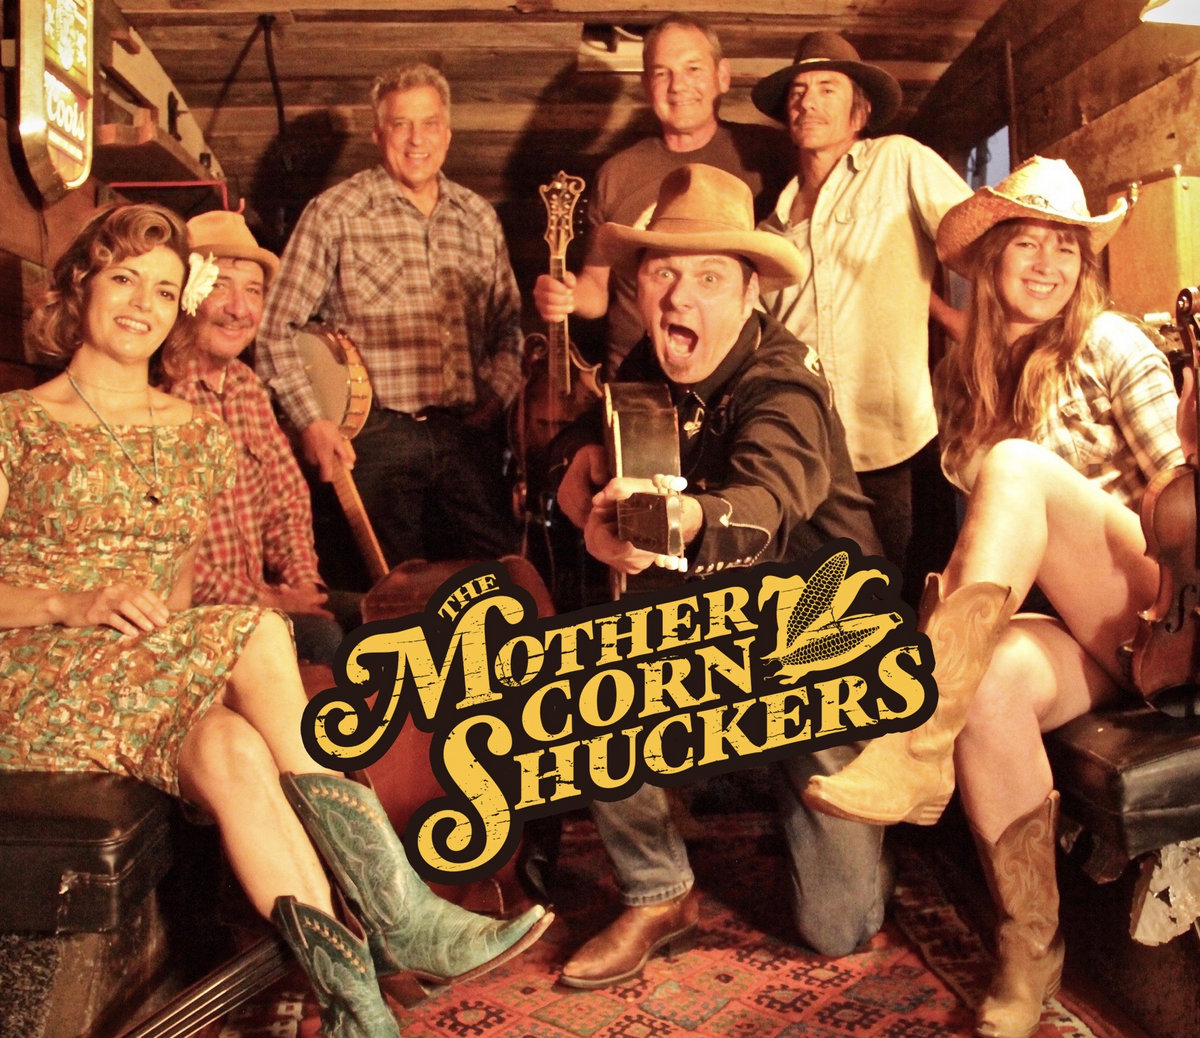 The Mother Corn Shuckers | The Mother Corn Shuckers